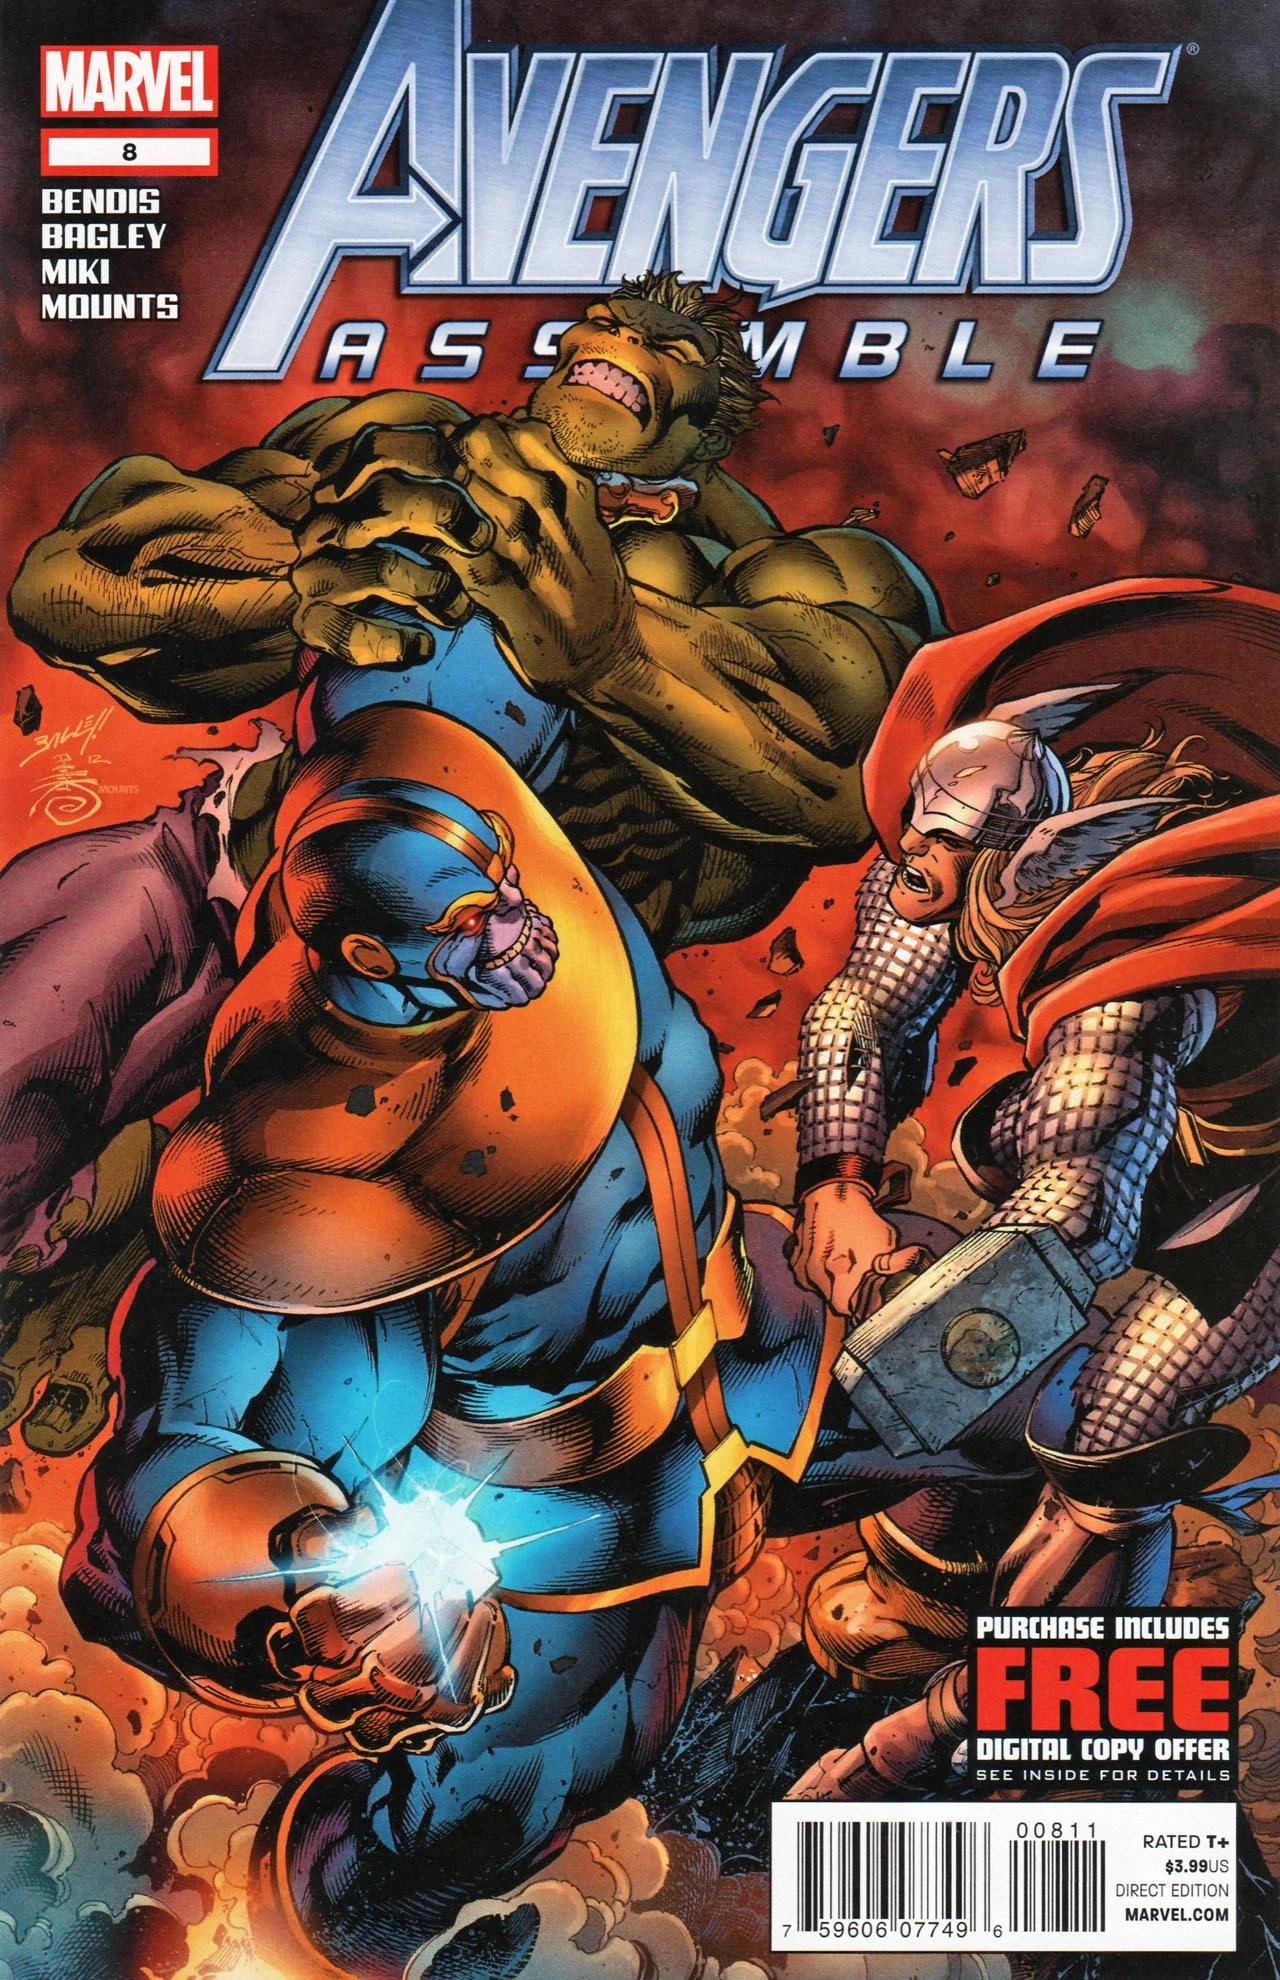 Avengers Assemble Vol 3 8 | The Mighty Thor | FANDOM powered by Wikia